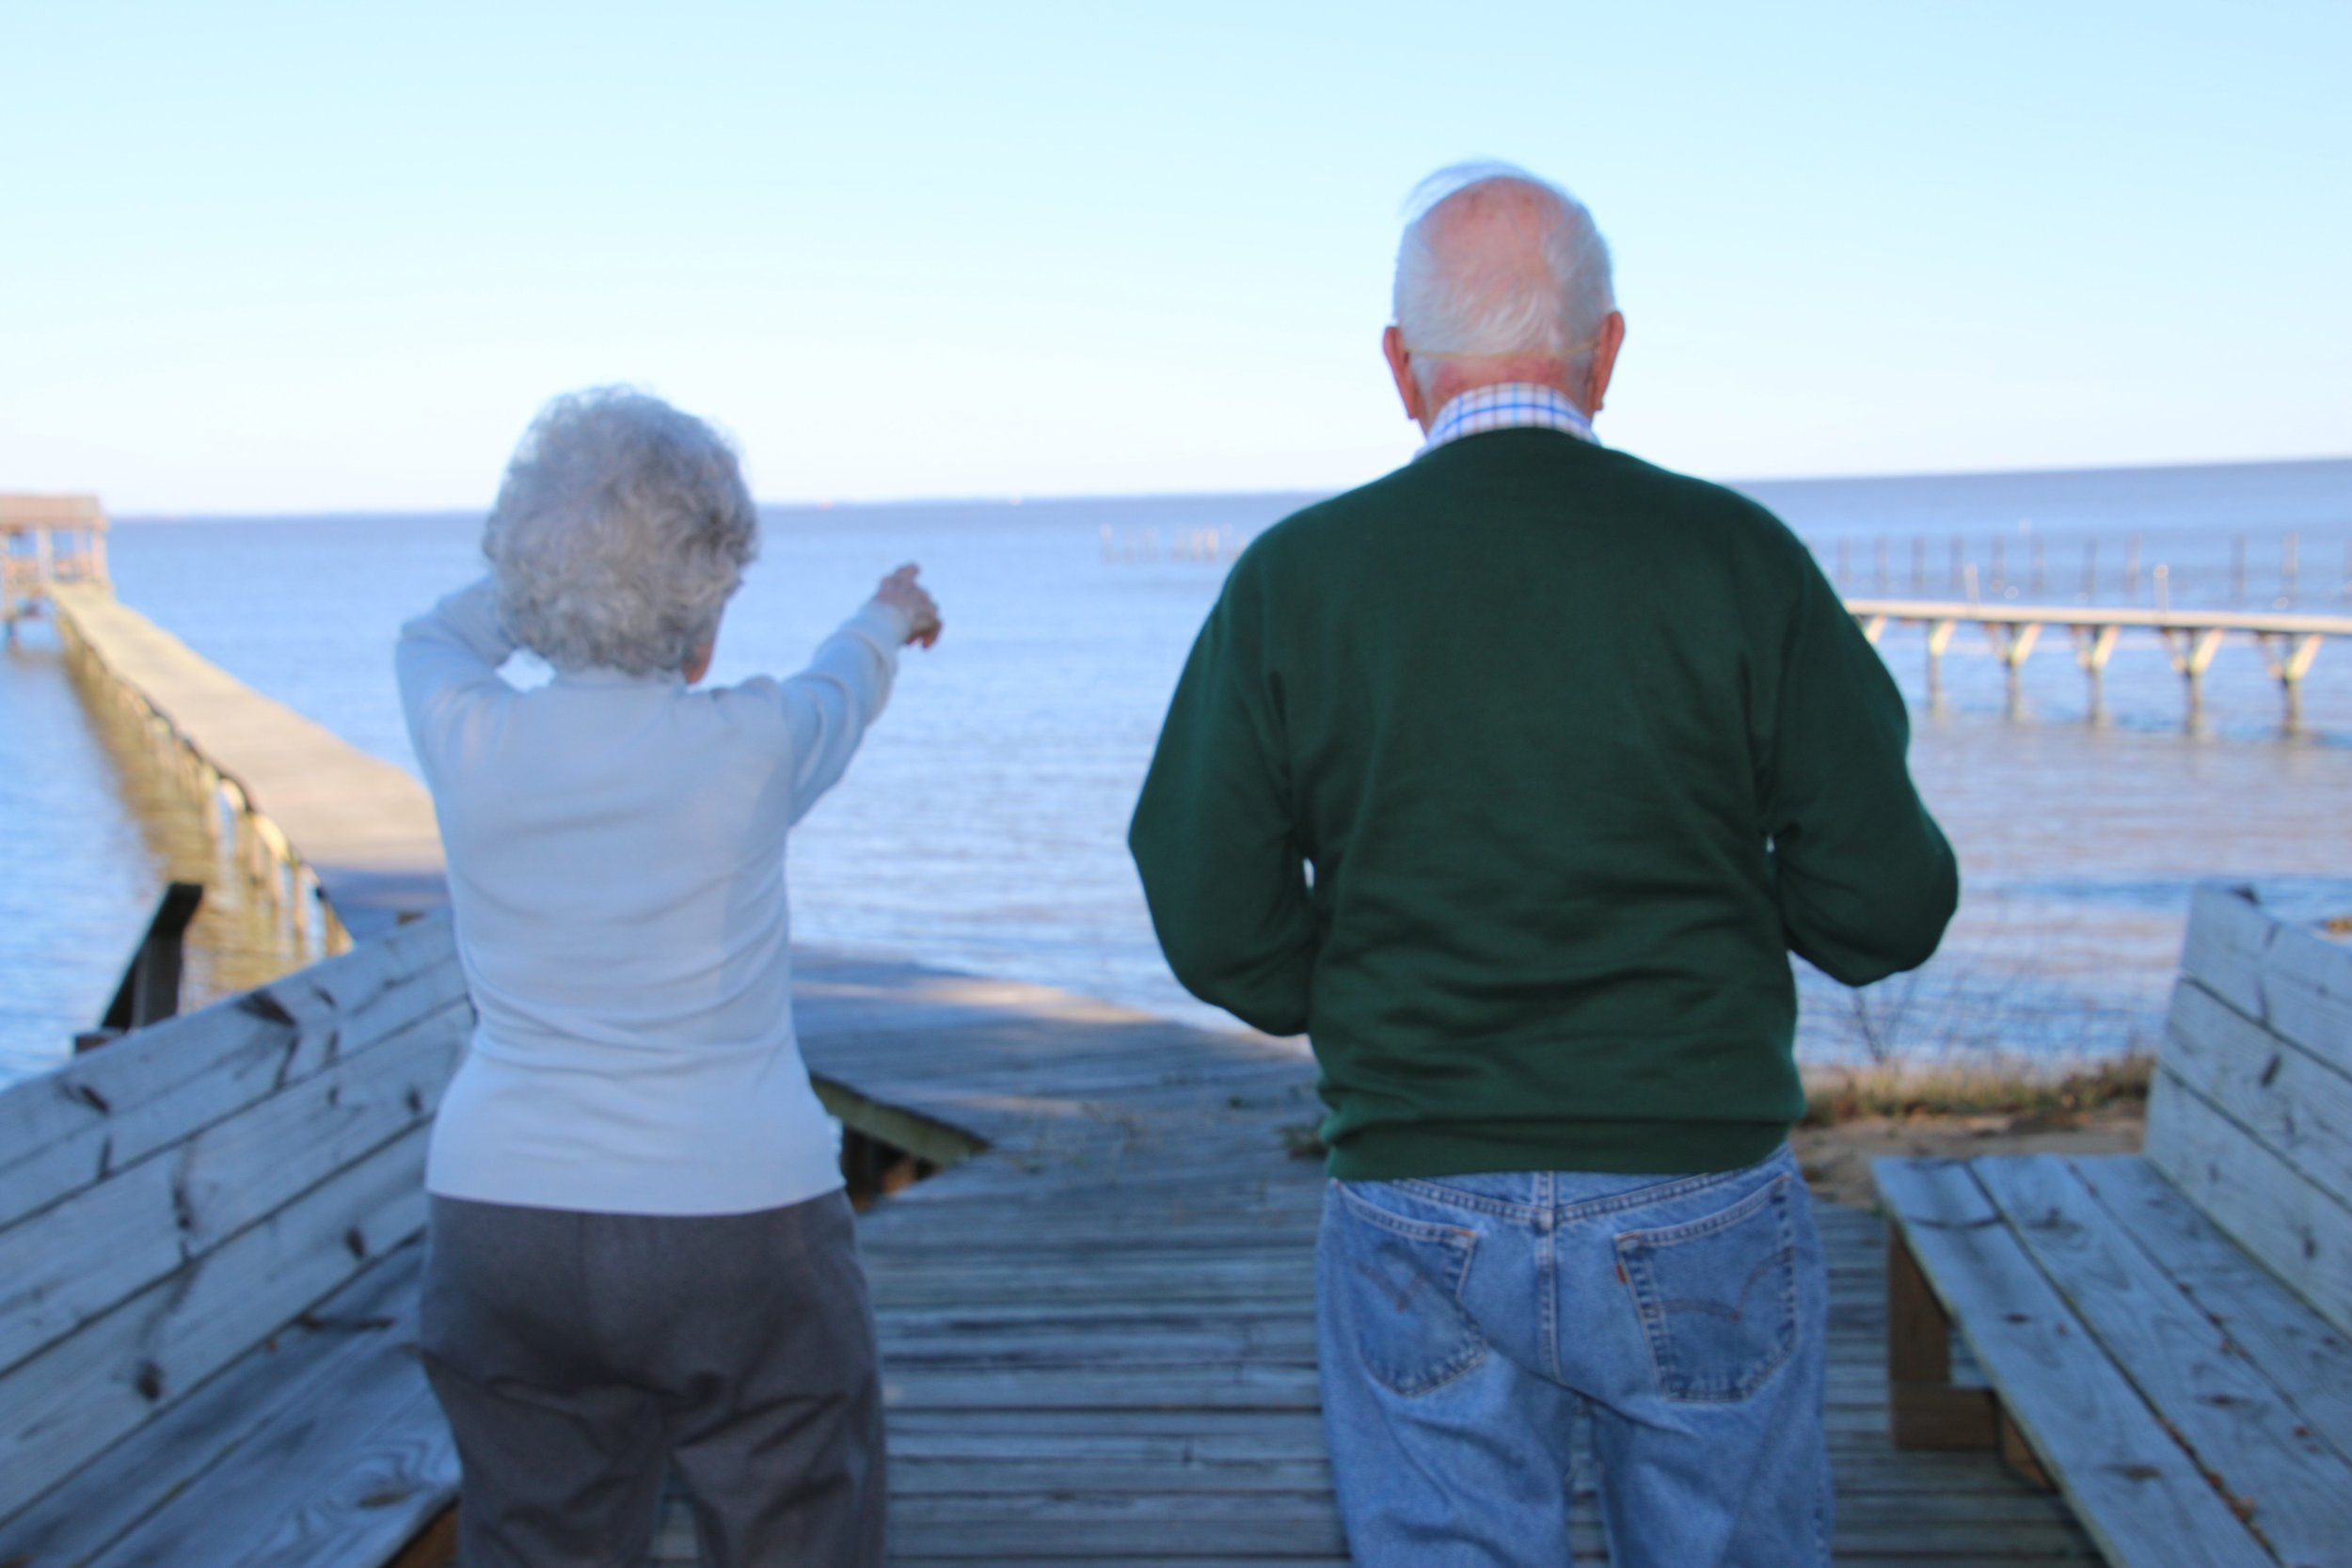 Jack and his wife Janice point to the location where the sewage outfall pipe was supposed to be built in the mid 1990s from their home on Mobile Bay's western shore.